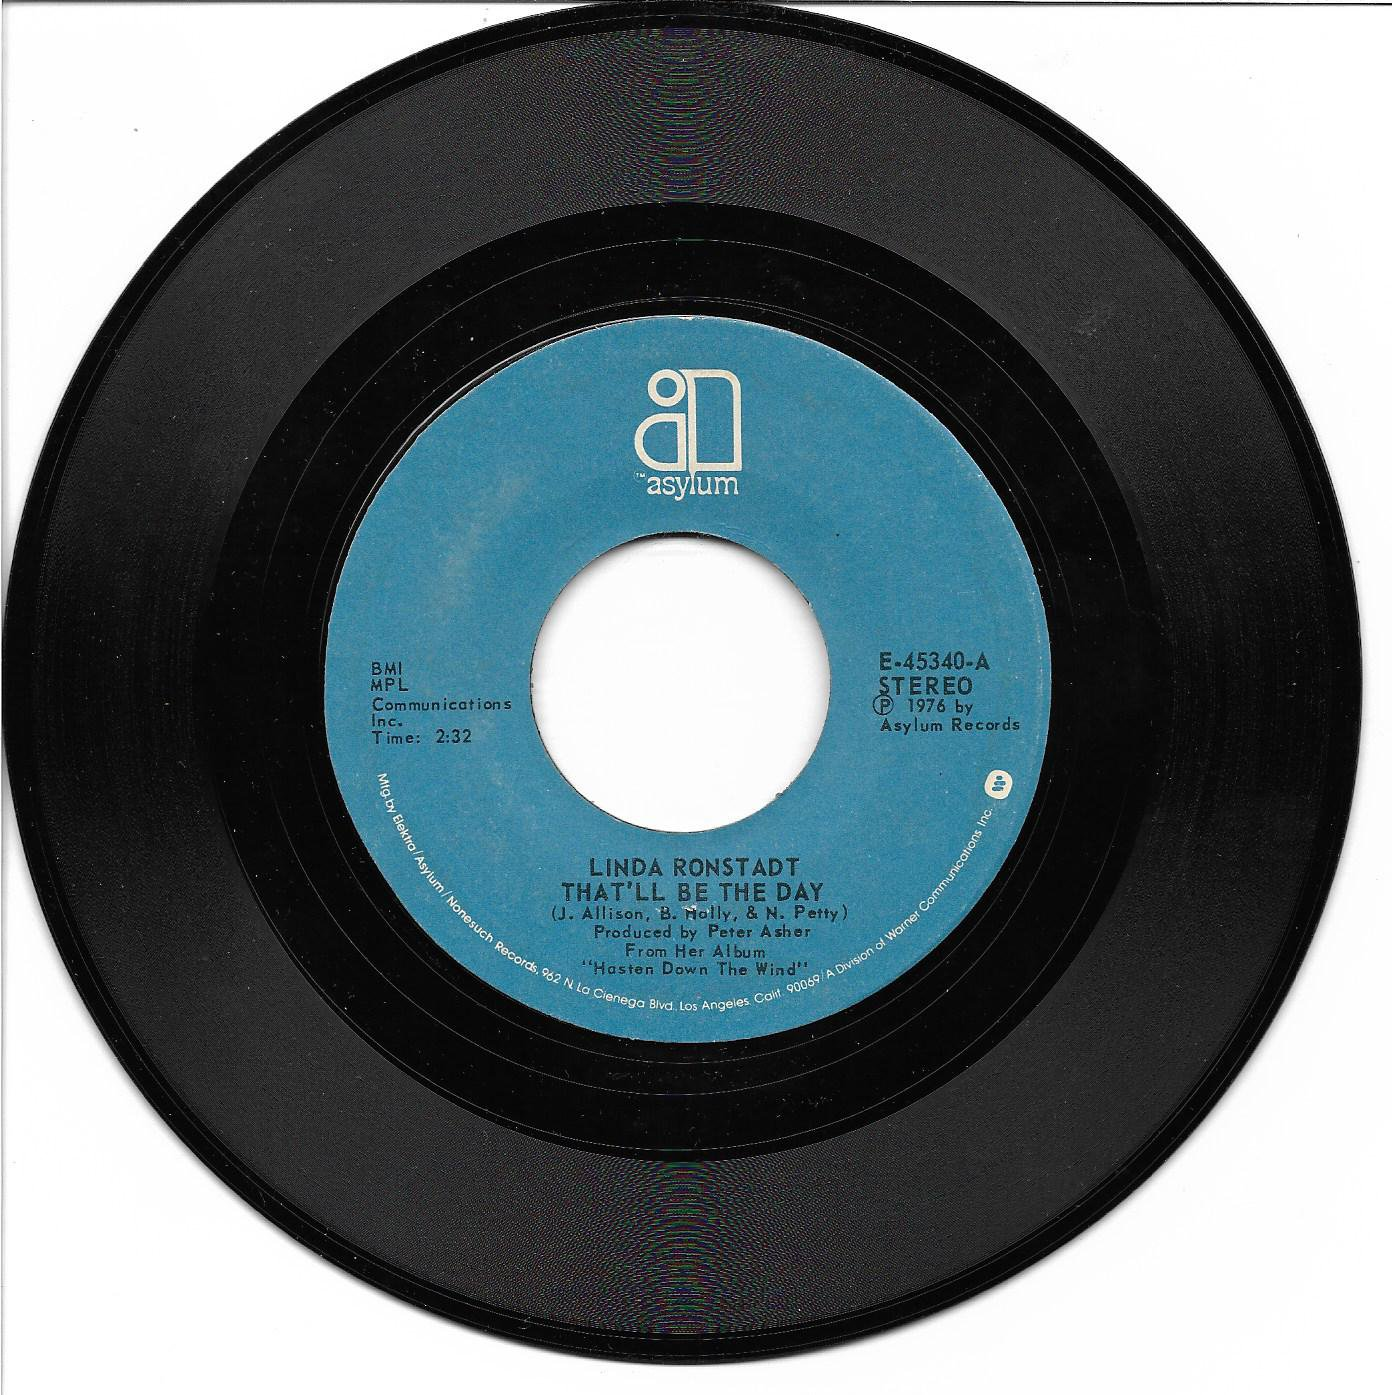 """Linda Ronstadt: """"That'll Be The Day"""" / """"Try Me Again"""" - her '76 hit - plays NM!"""